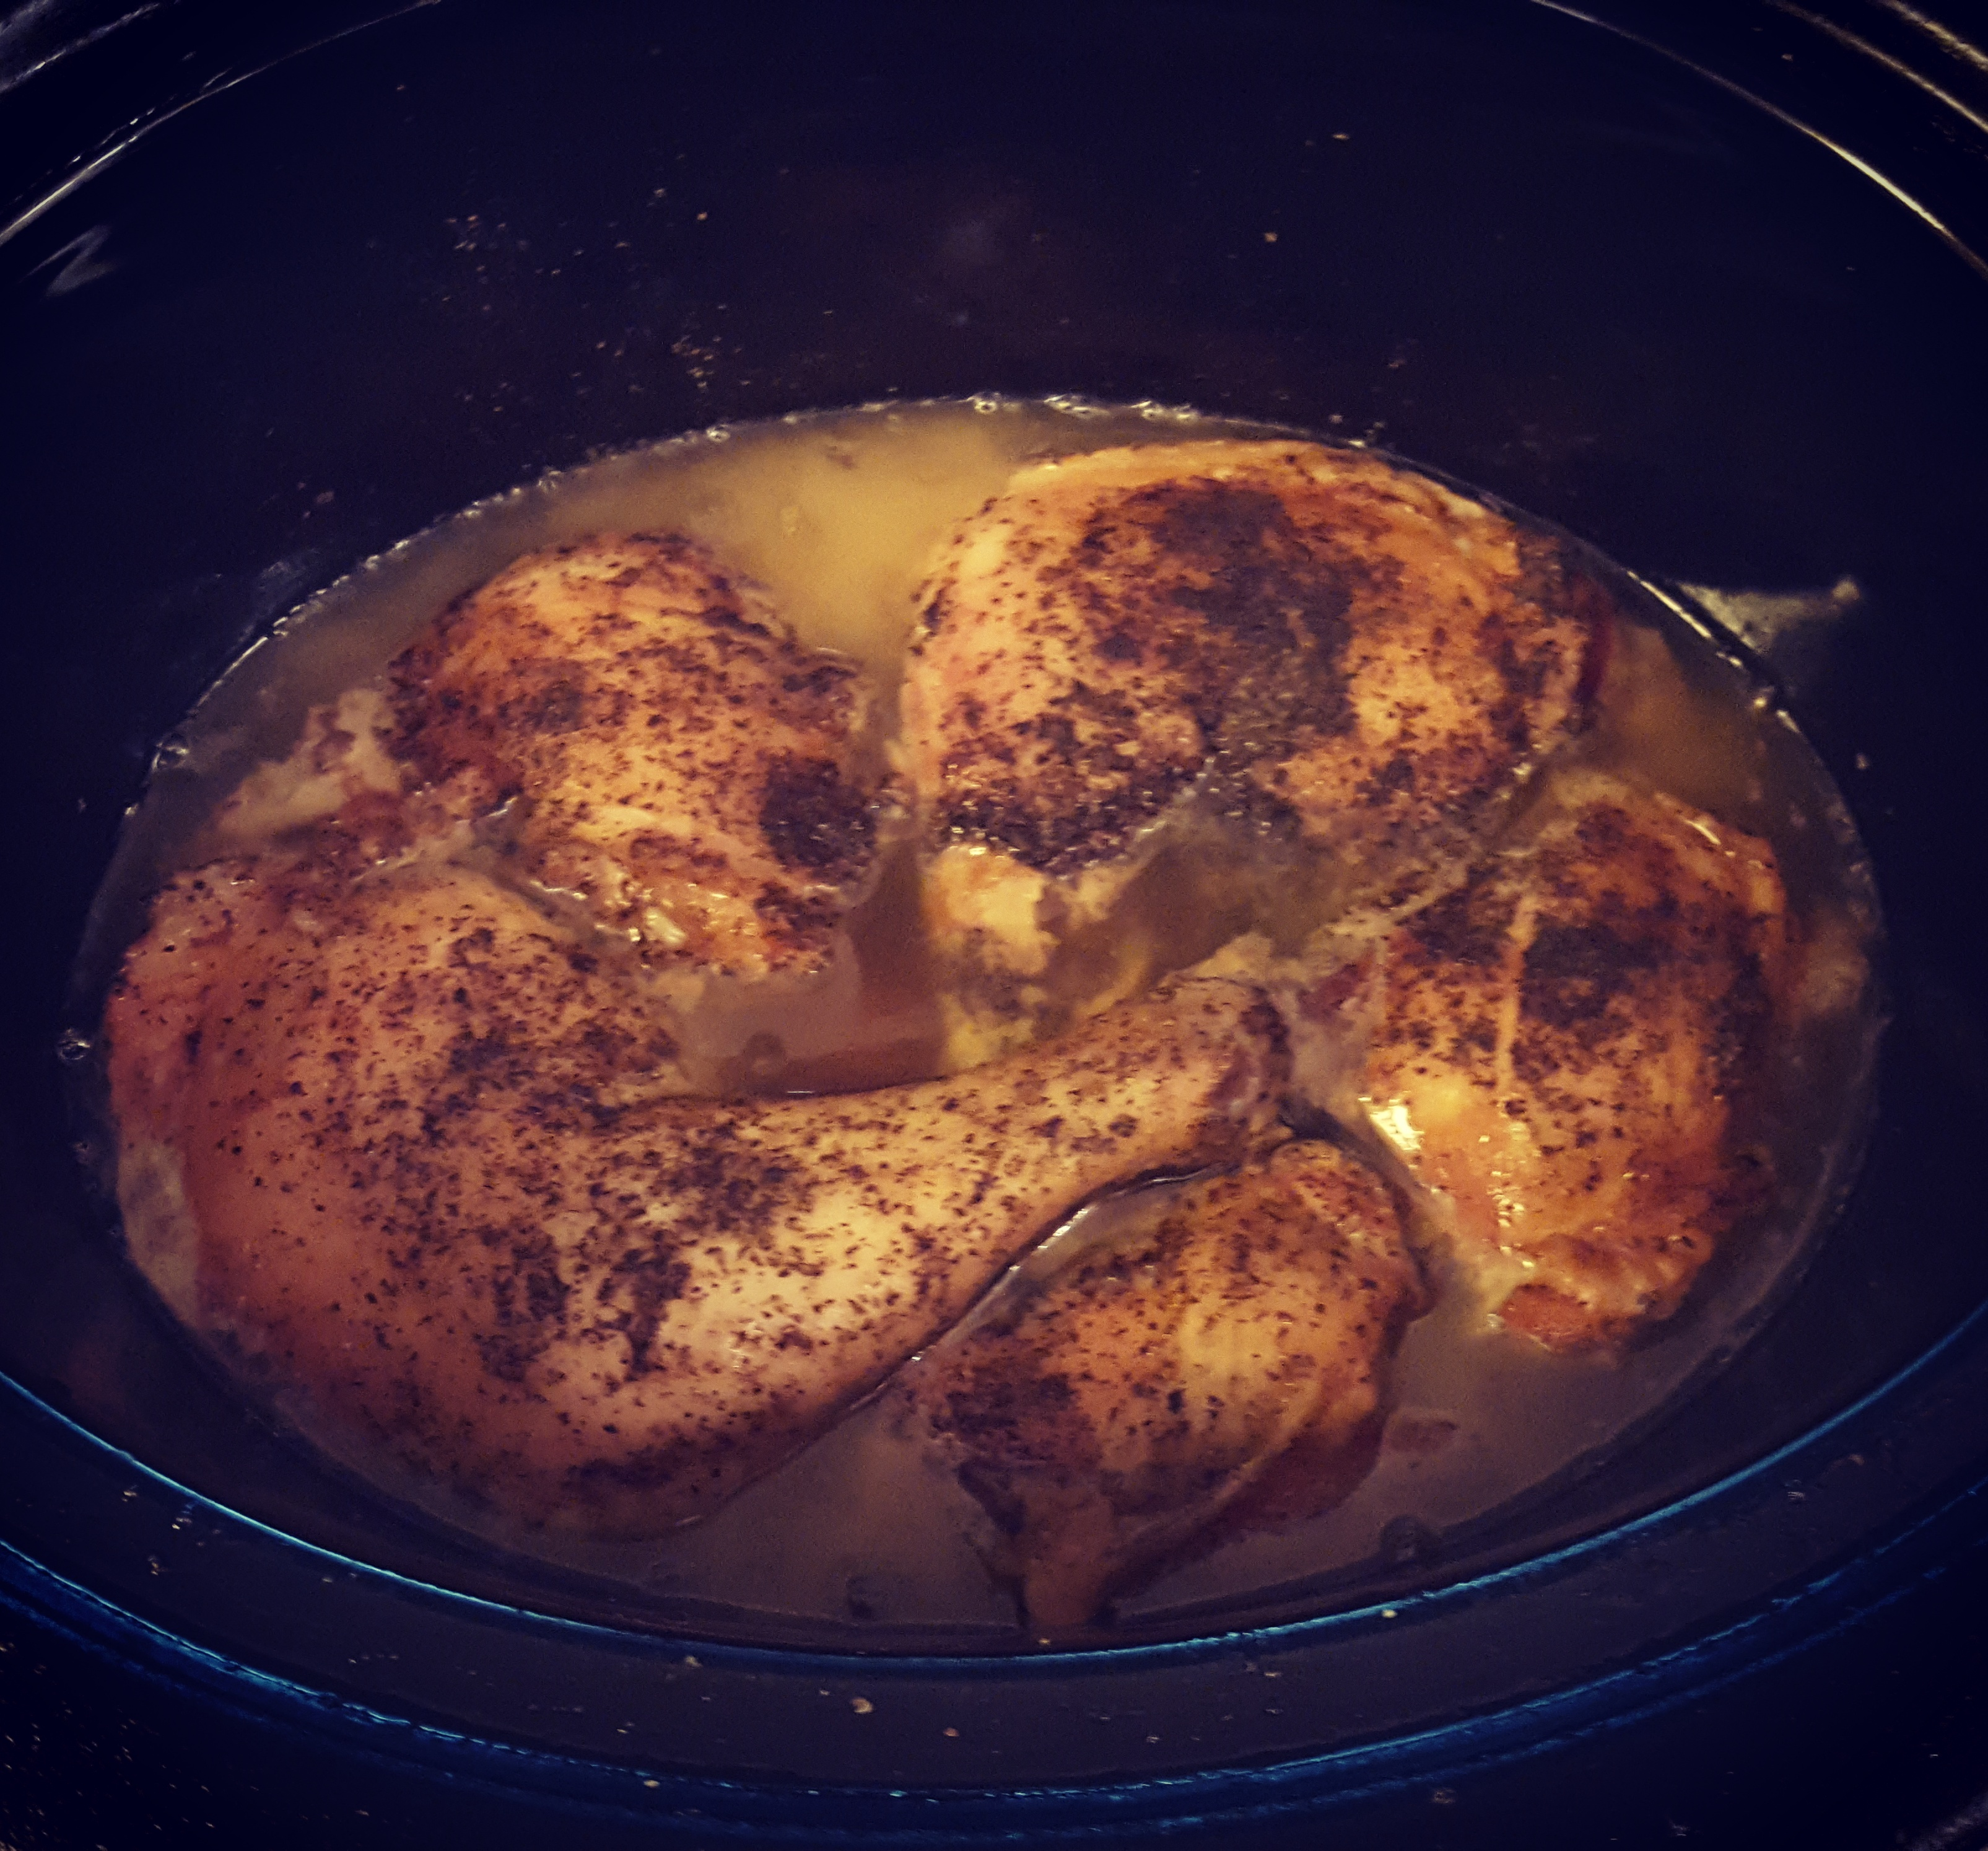 Crock-pot chicken just changed my entire life